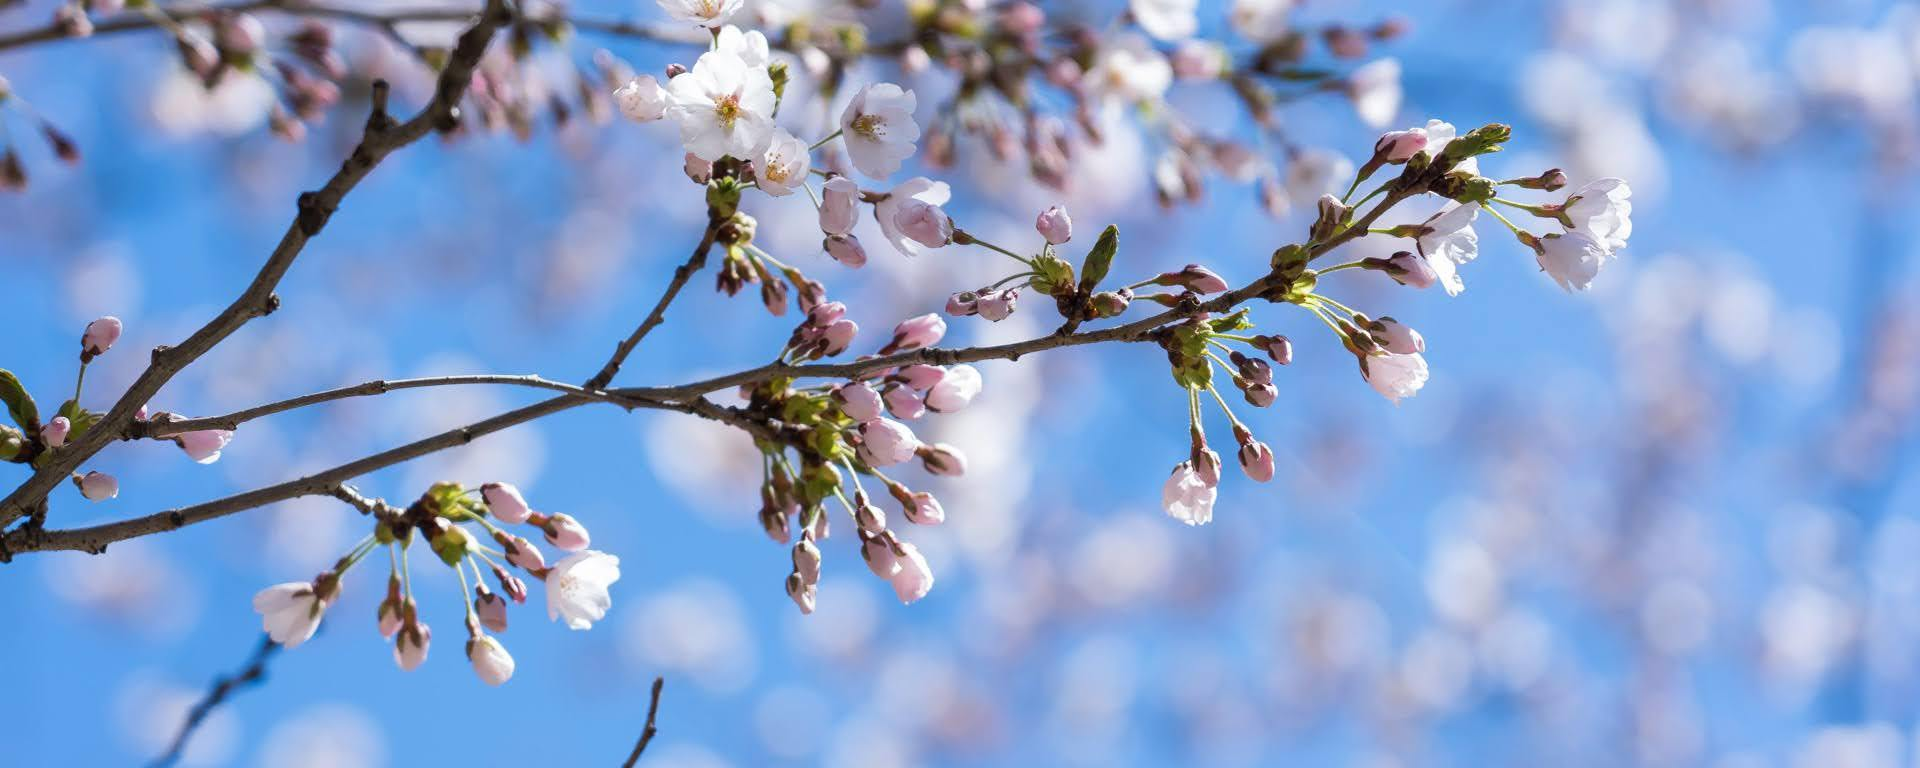 10 Free Cherry Blossom Zoom Backgrounds & Screensavers